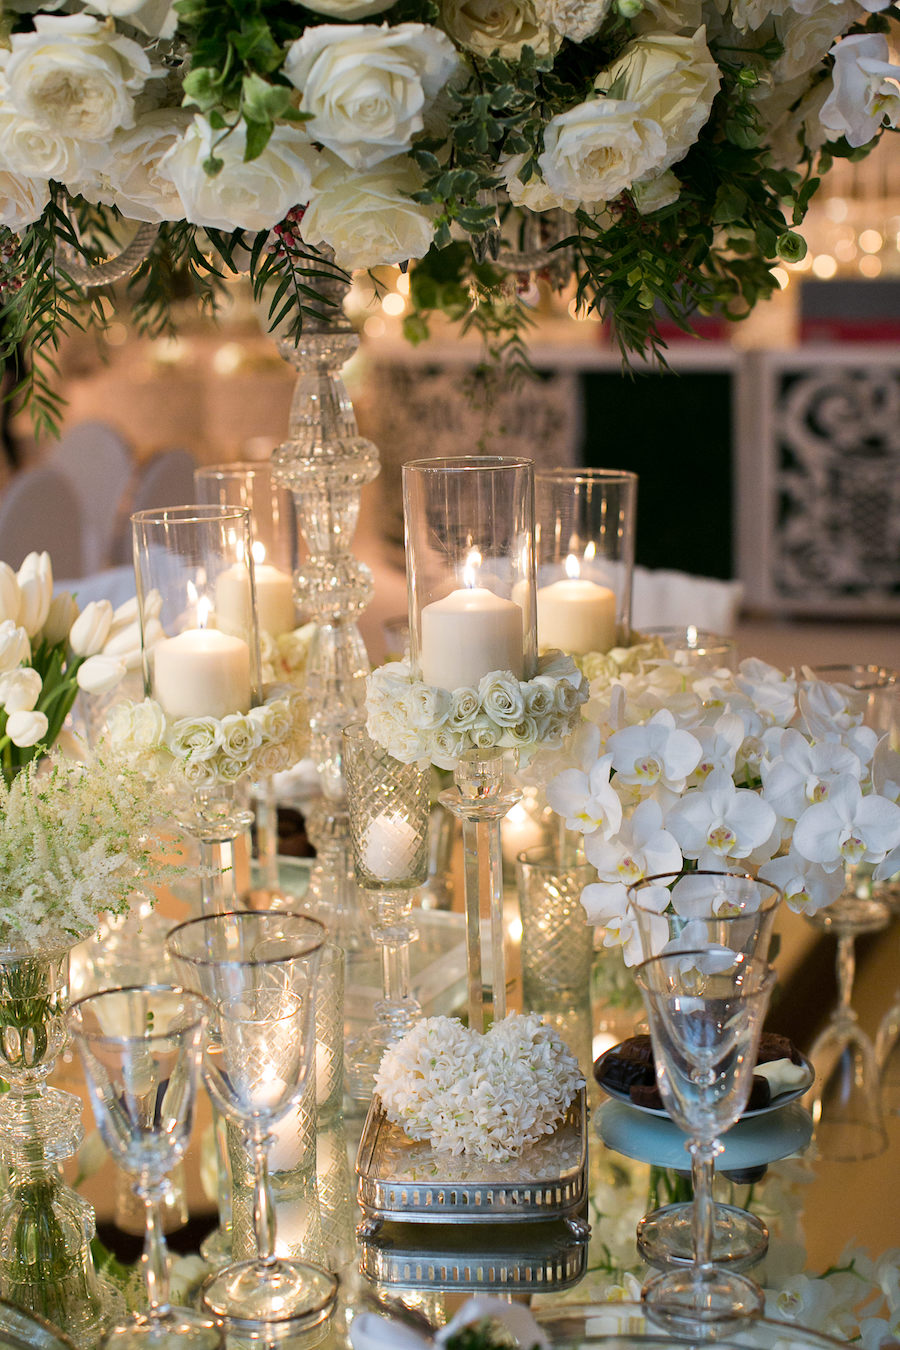 inside weddings, featured, press, garden wedding, lfe, alyson levine fox, four seasons wedding, revelry, revelry event design, luxury wedding, luxury bride, marks garden